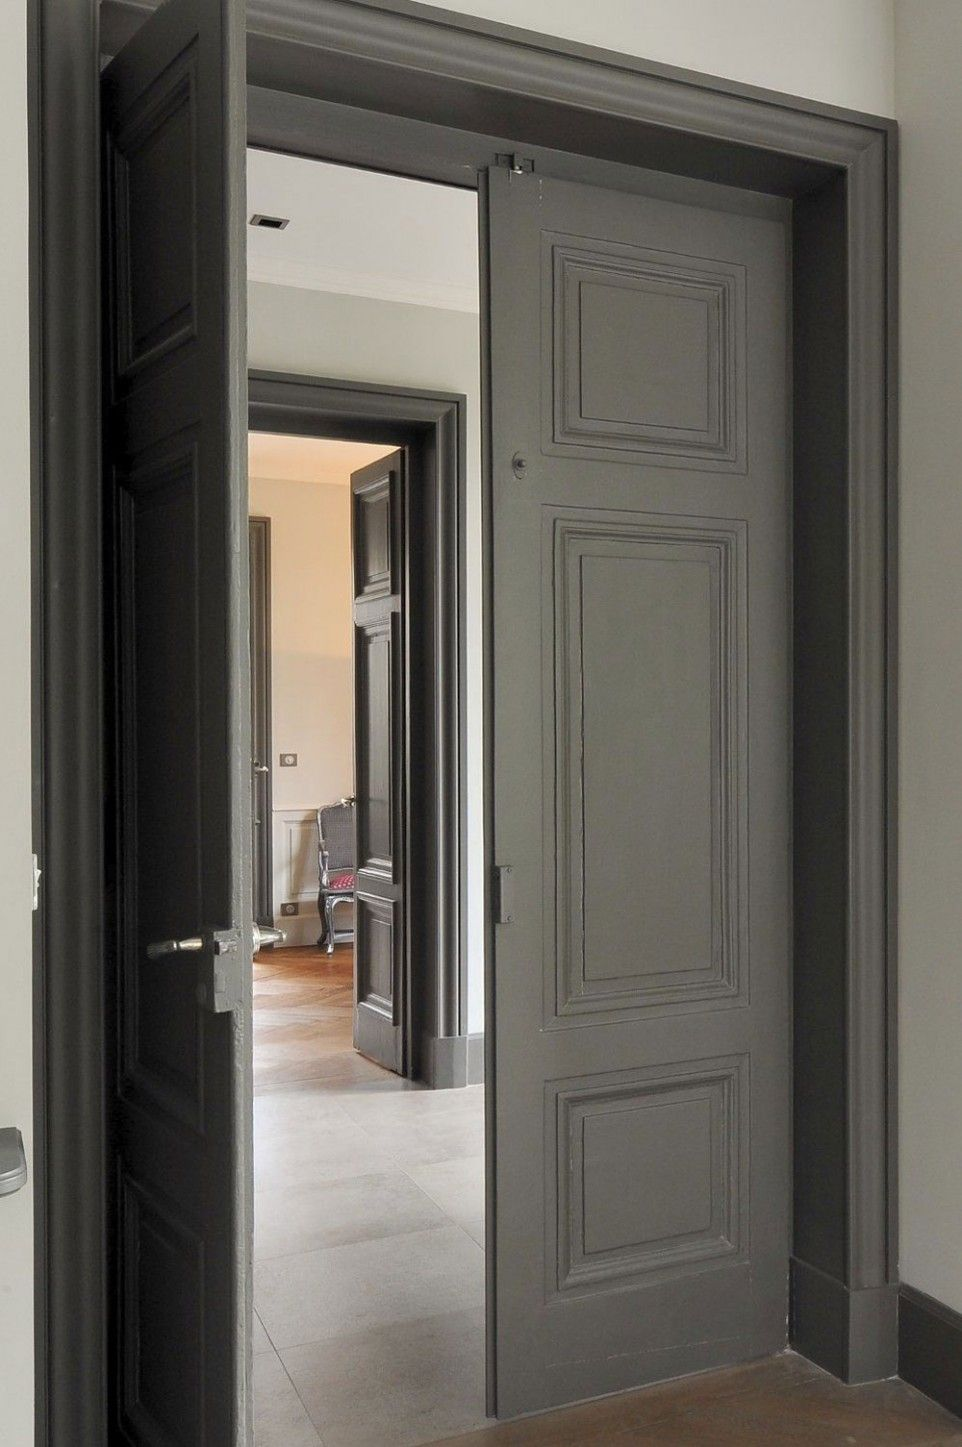 Home Improvement, Double Interior Doors: Double Benefits, Double Beauty:  Greenish Dark Grey Wooden Double Interior Doors